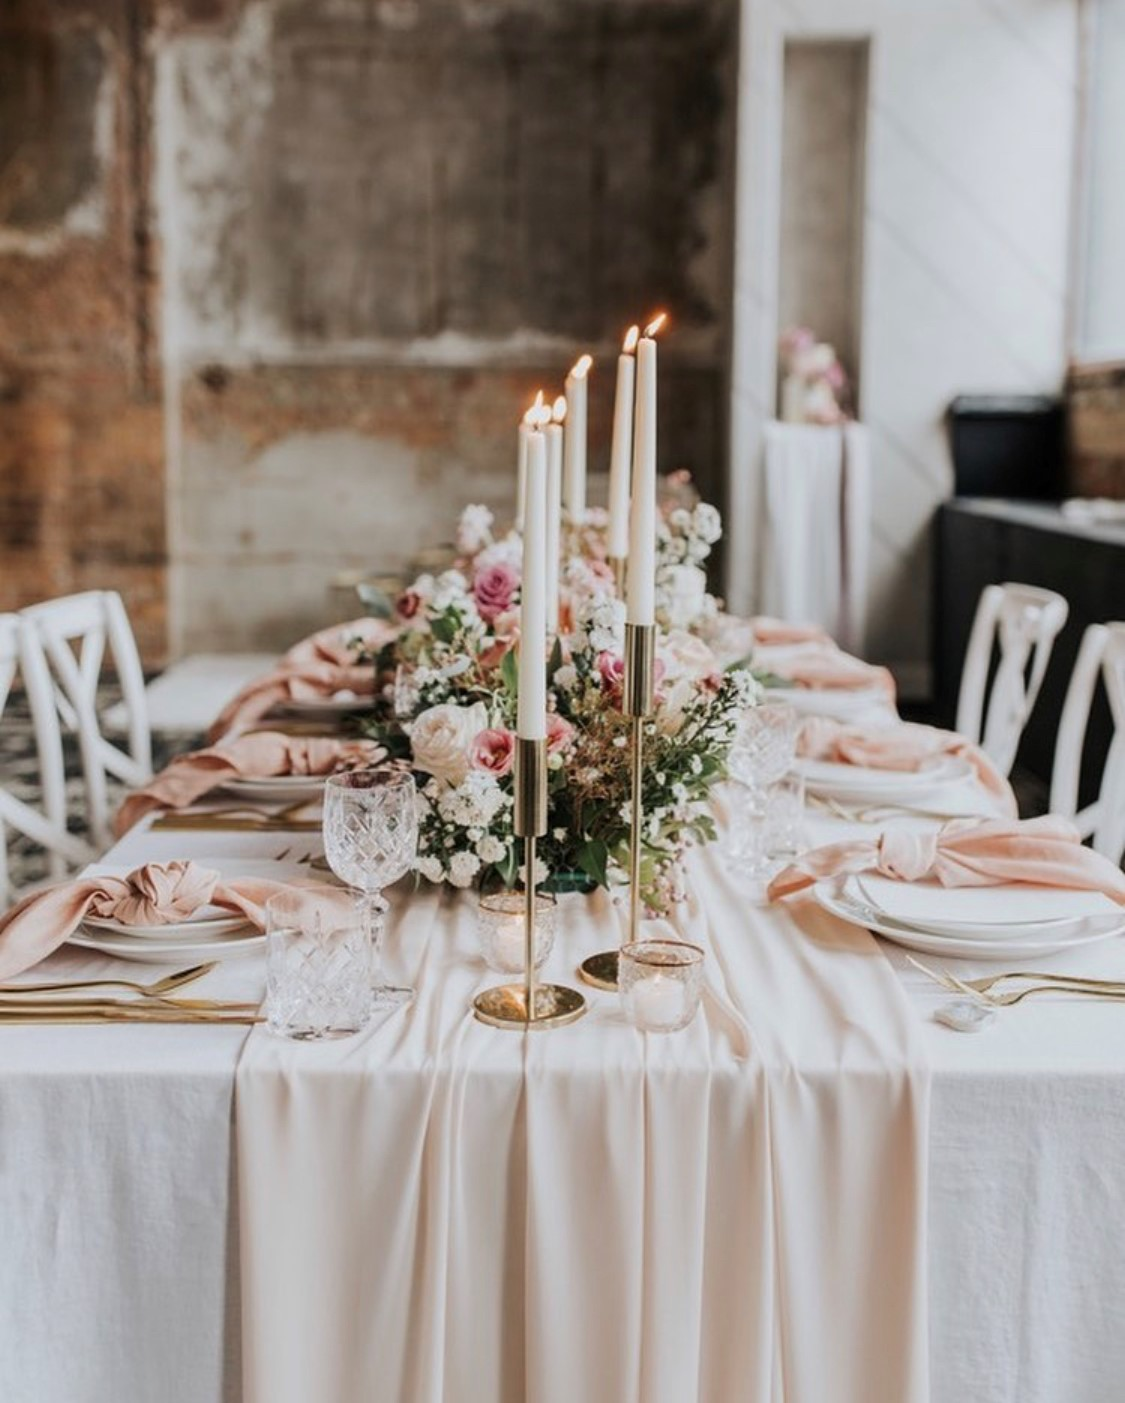 Nude Table Runners